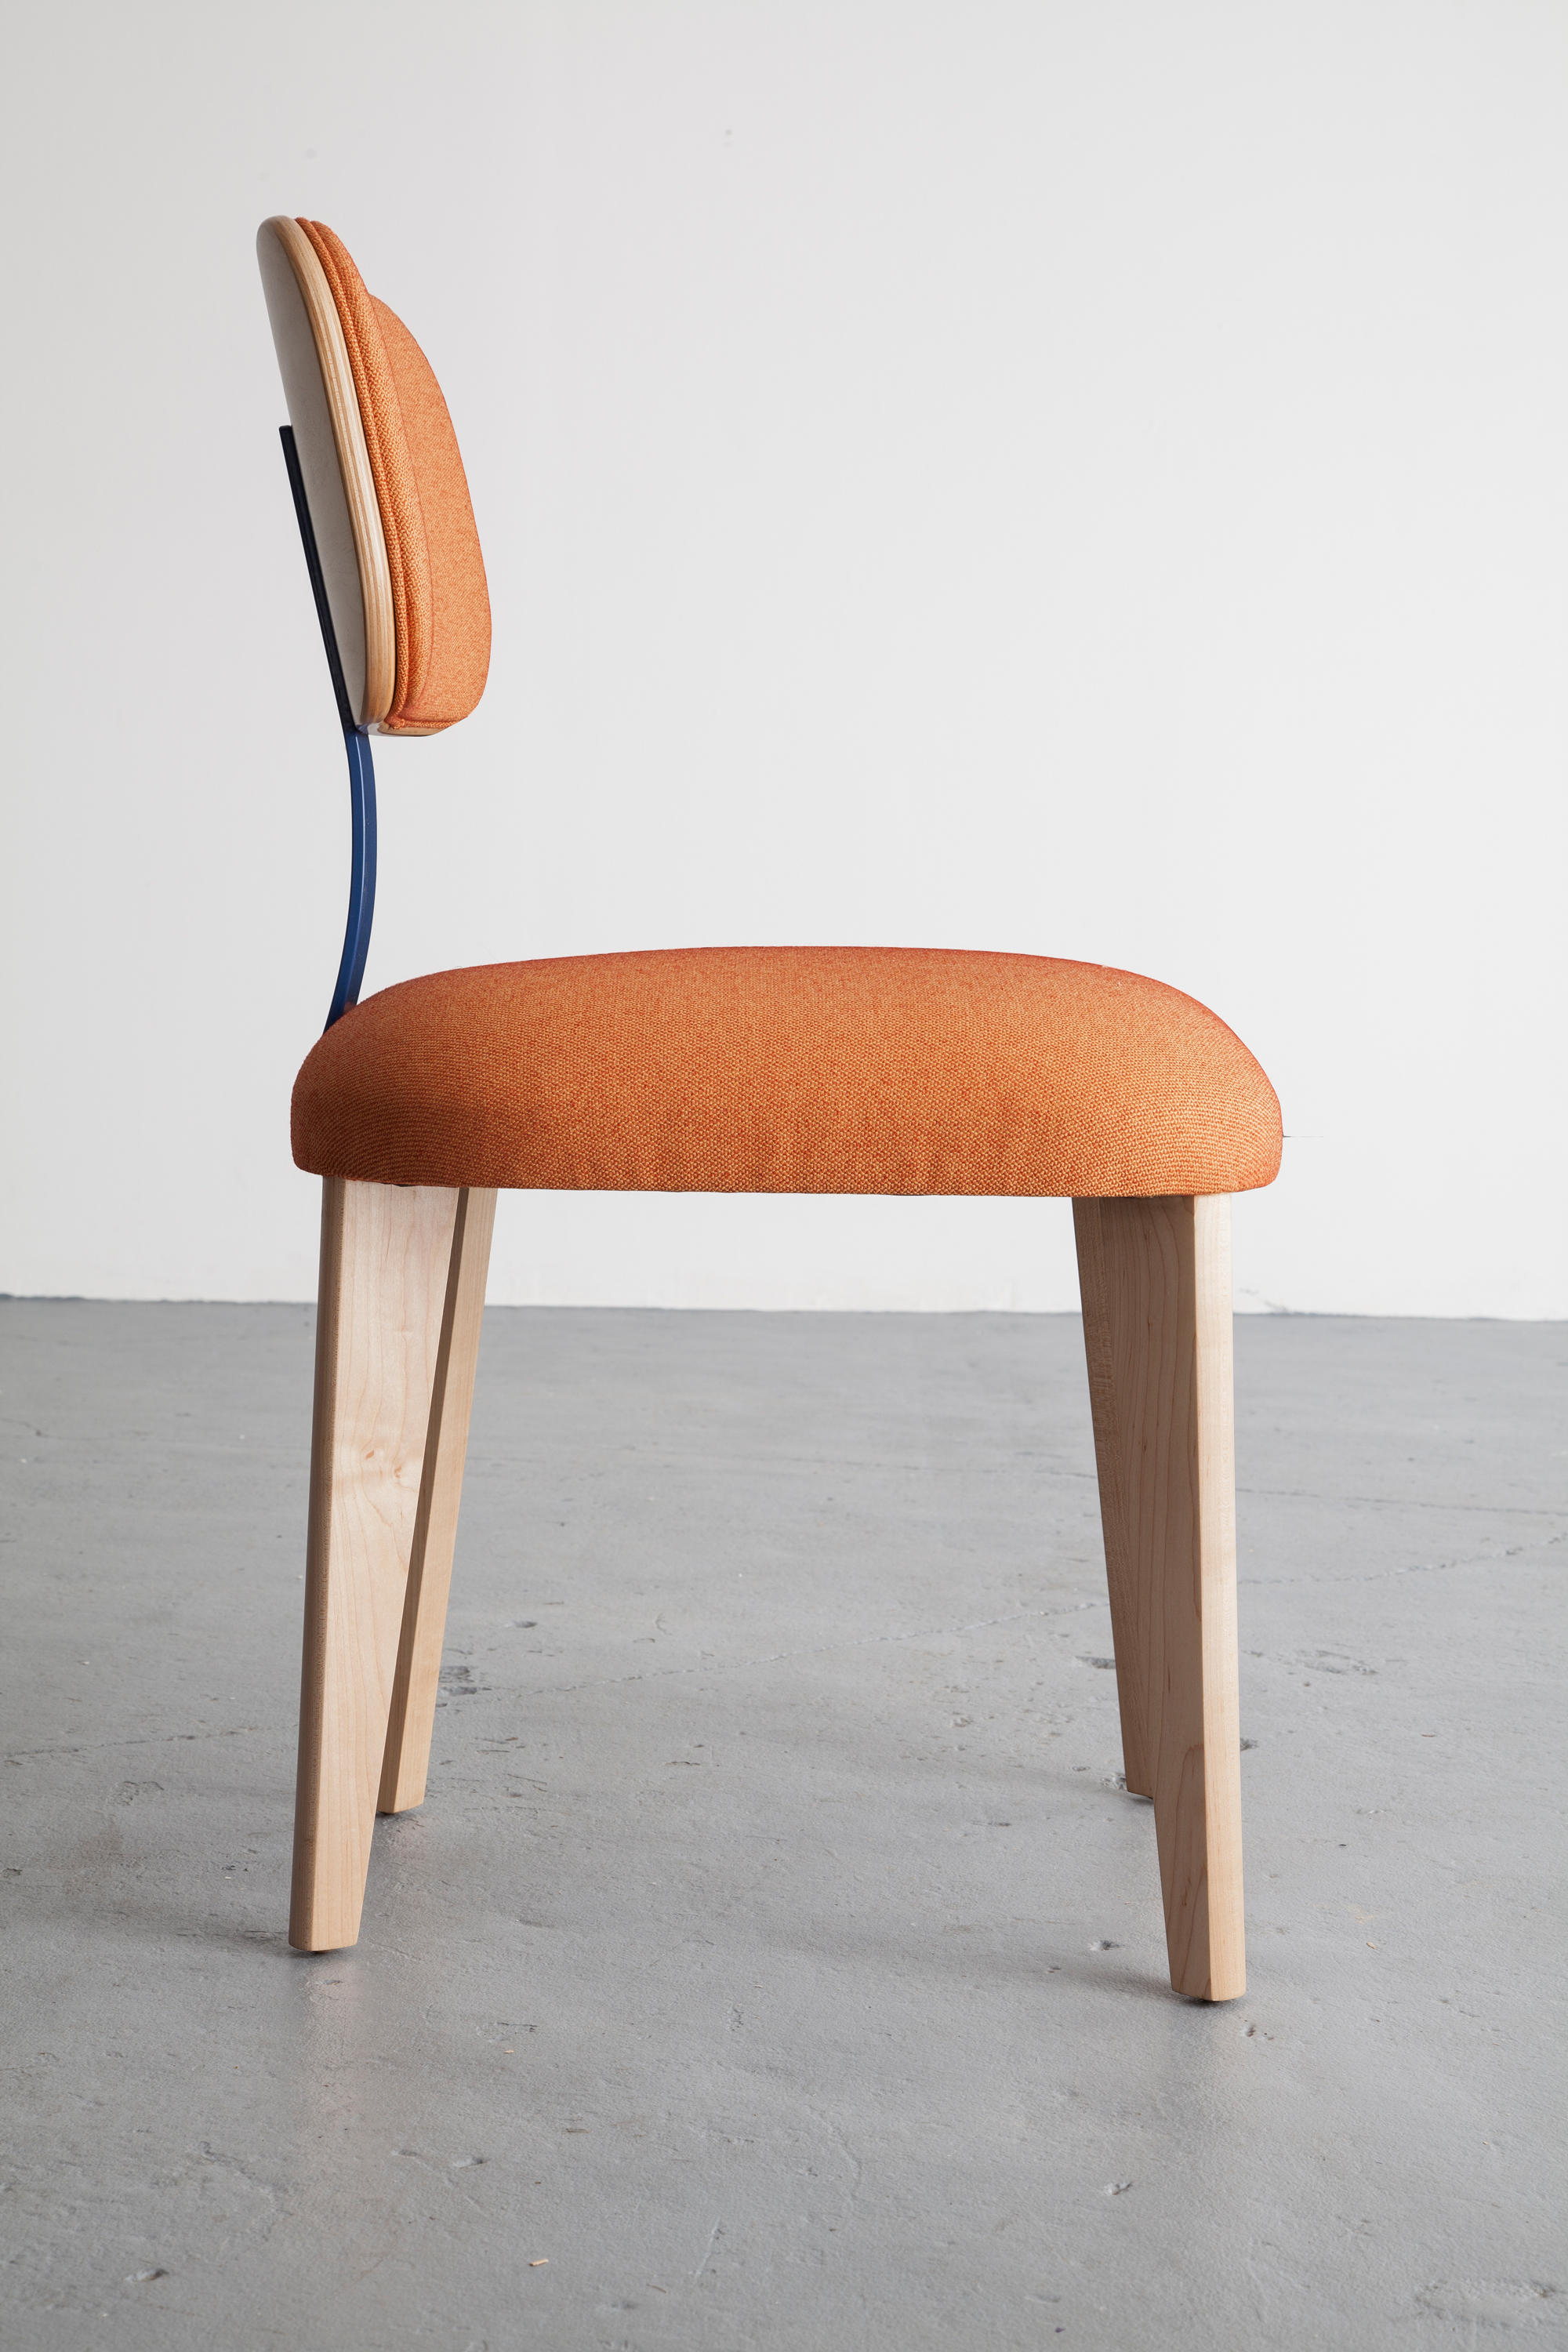 singer dining chair chairs from david gaynor design architonic